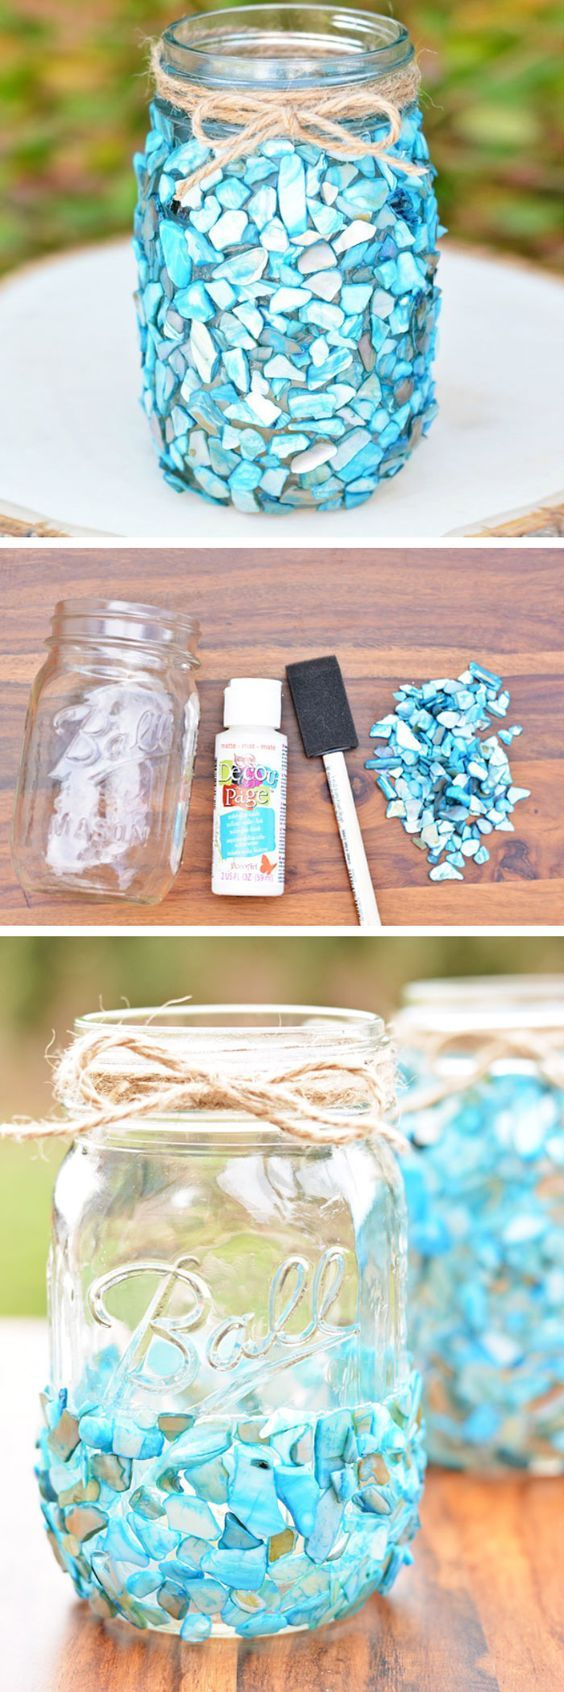 +90 Change Jar Decoration Examples